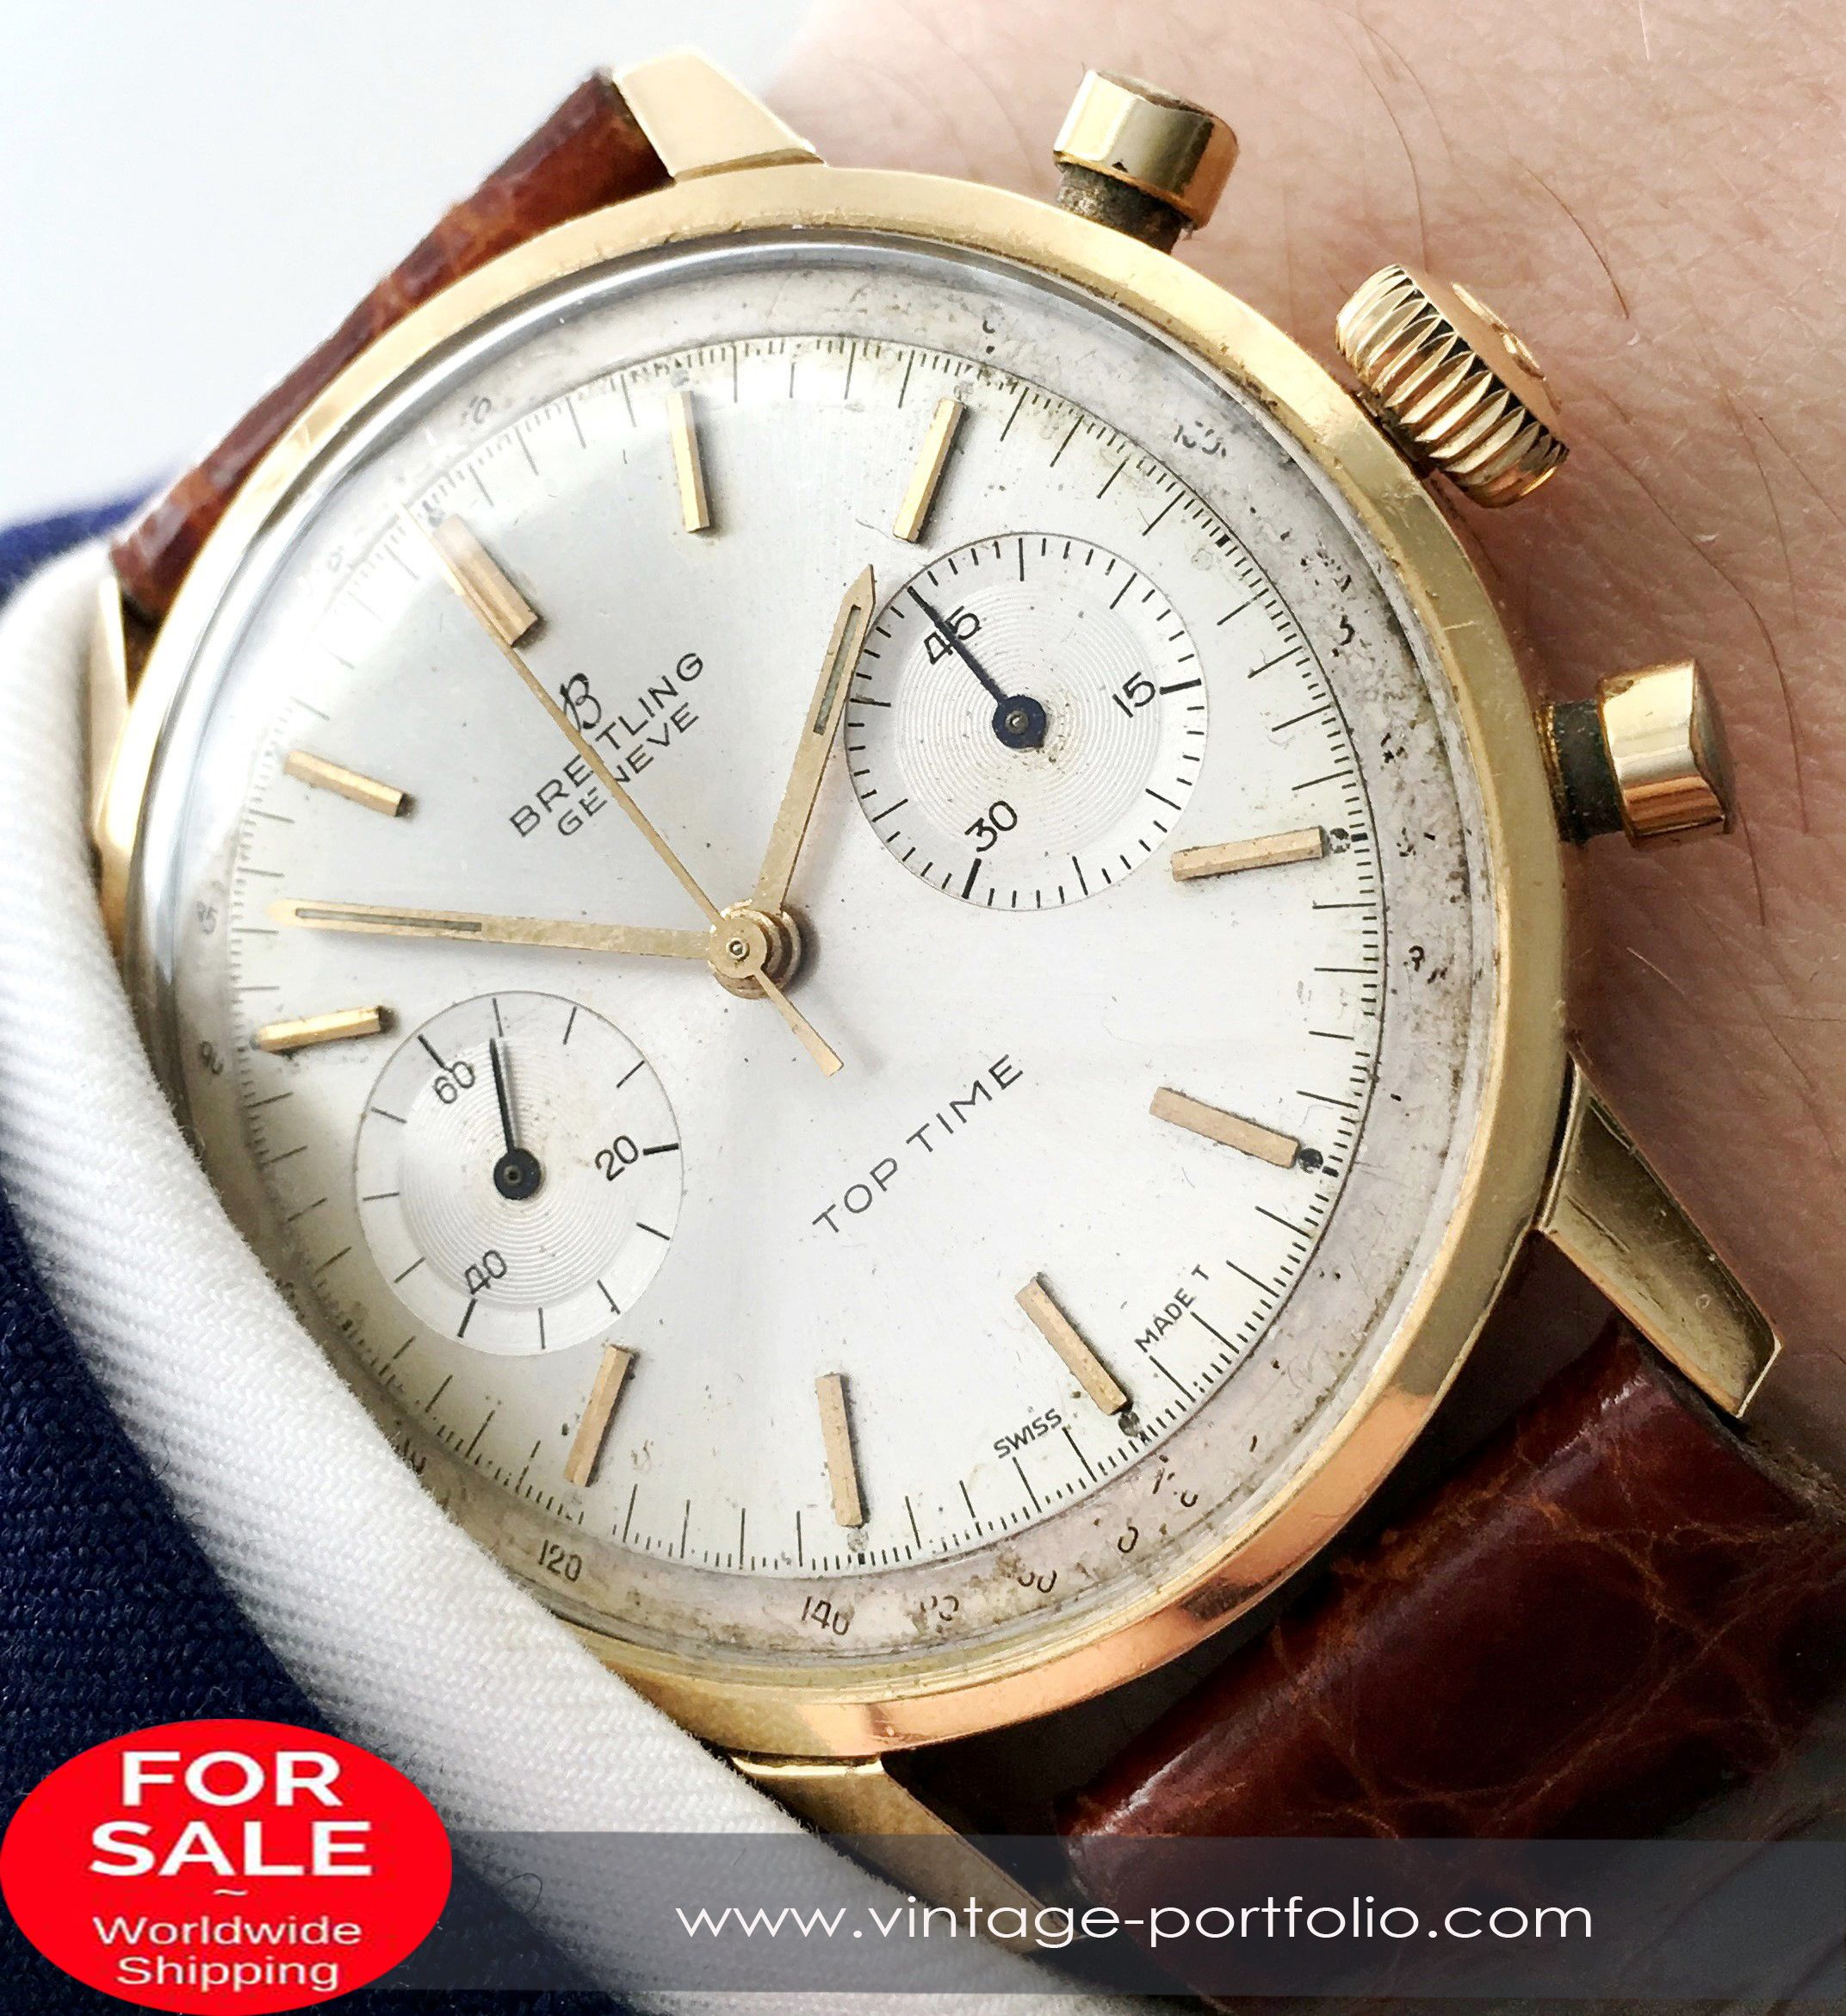 Uhr Vintage Rare Vintage Breitling Top Time Solid Gold Chronograph In 2019